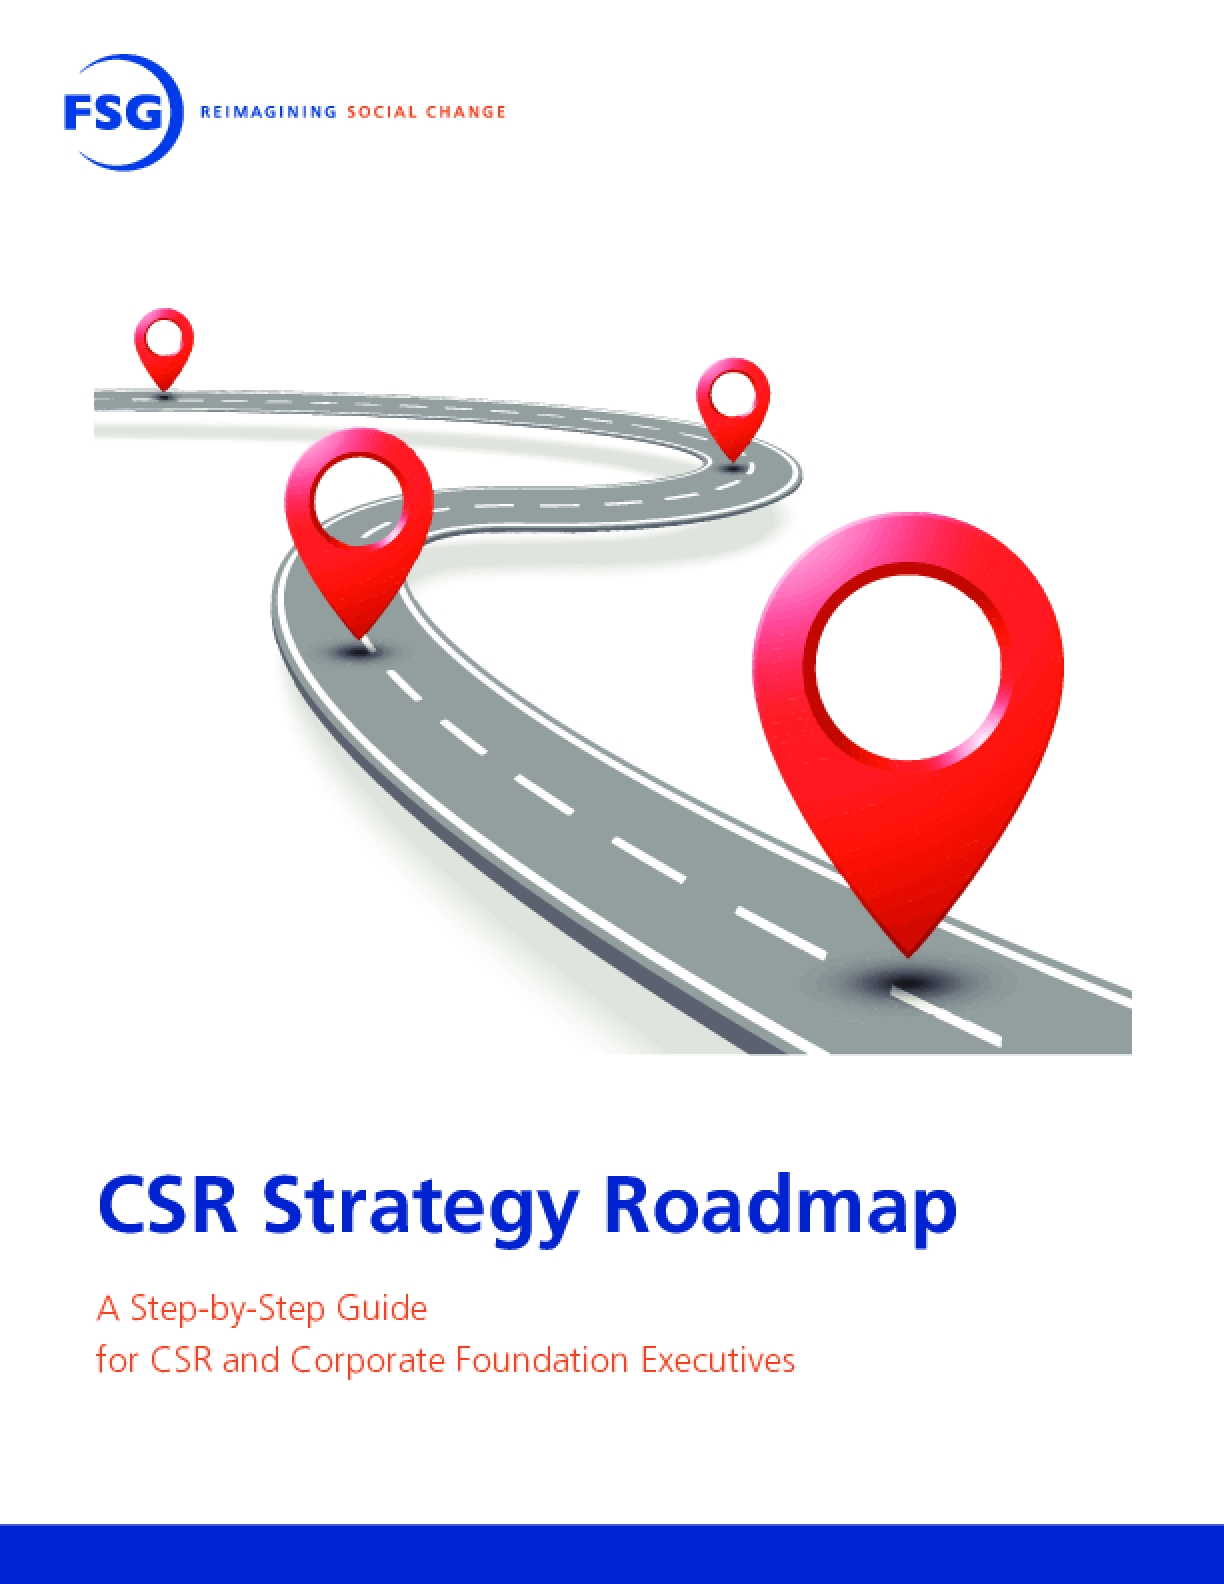 CSR Strategy Roadmap